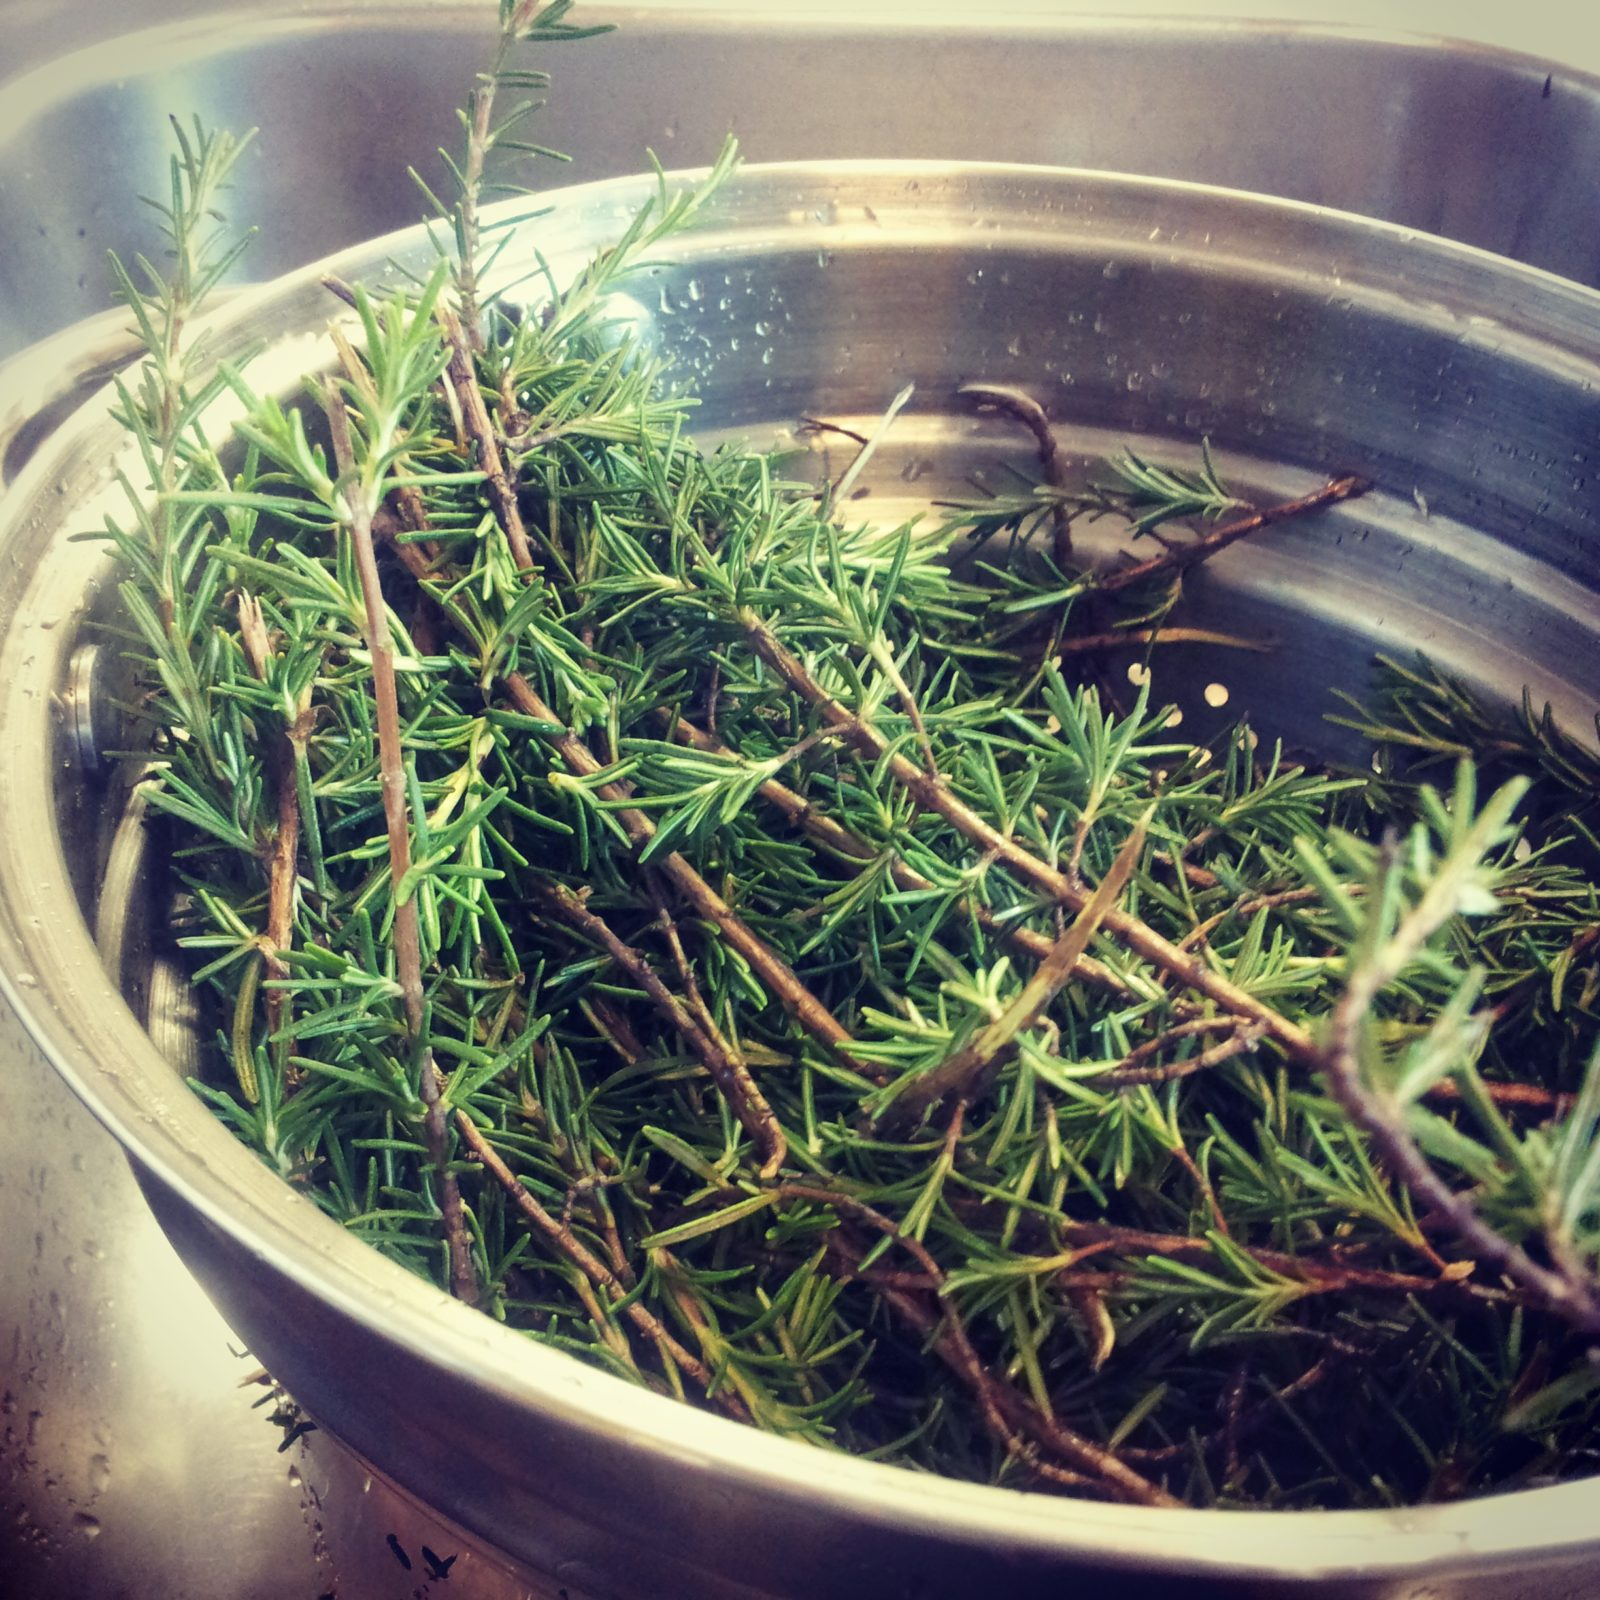 Rosemary Essential Oil for soap